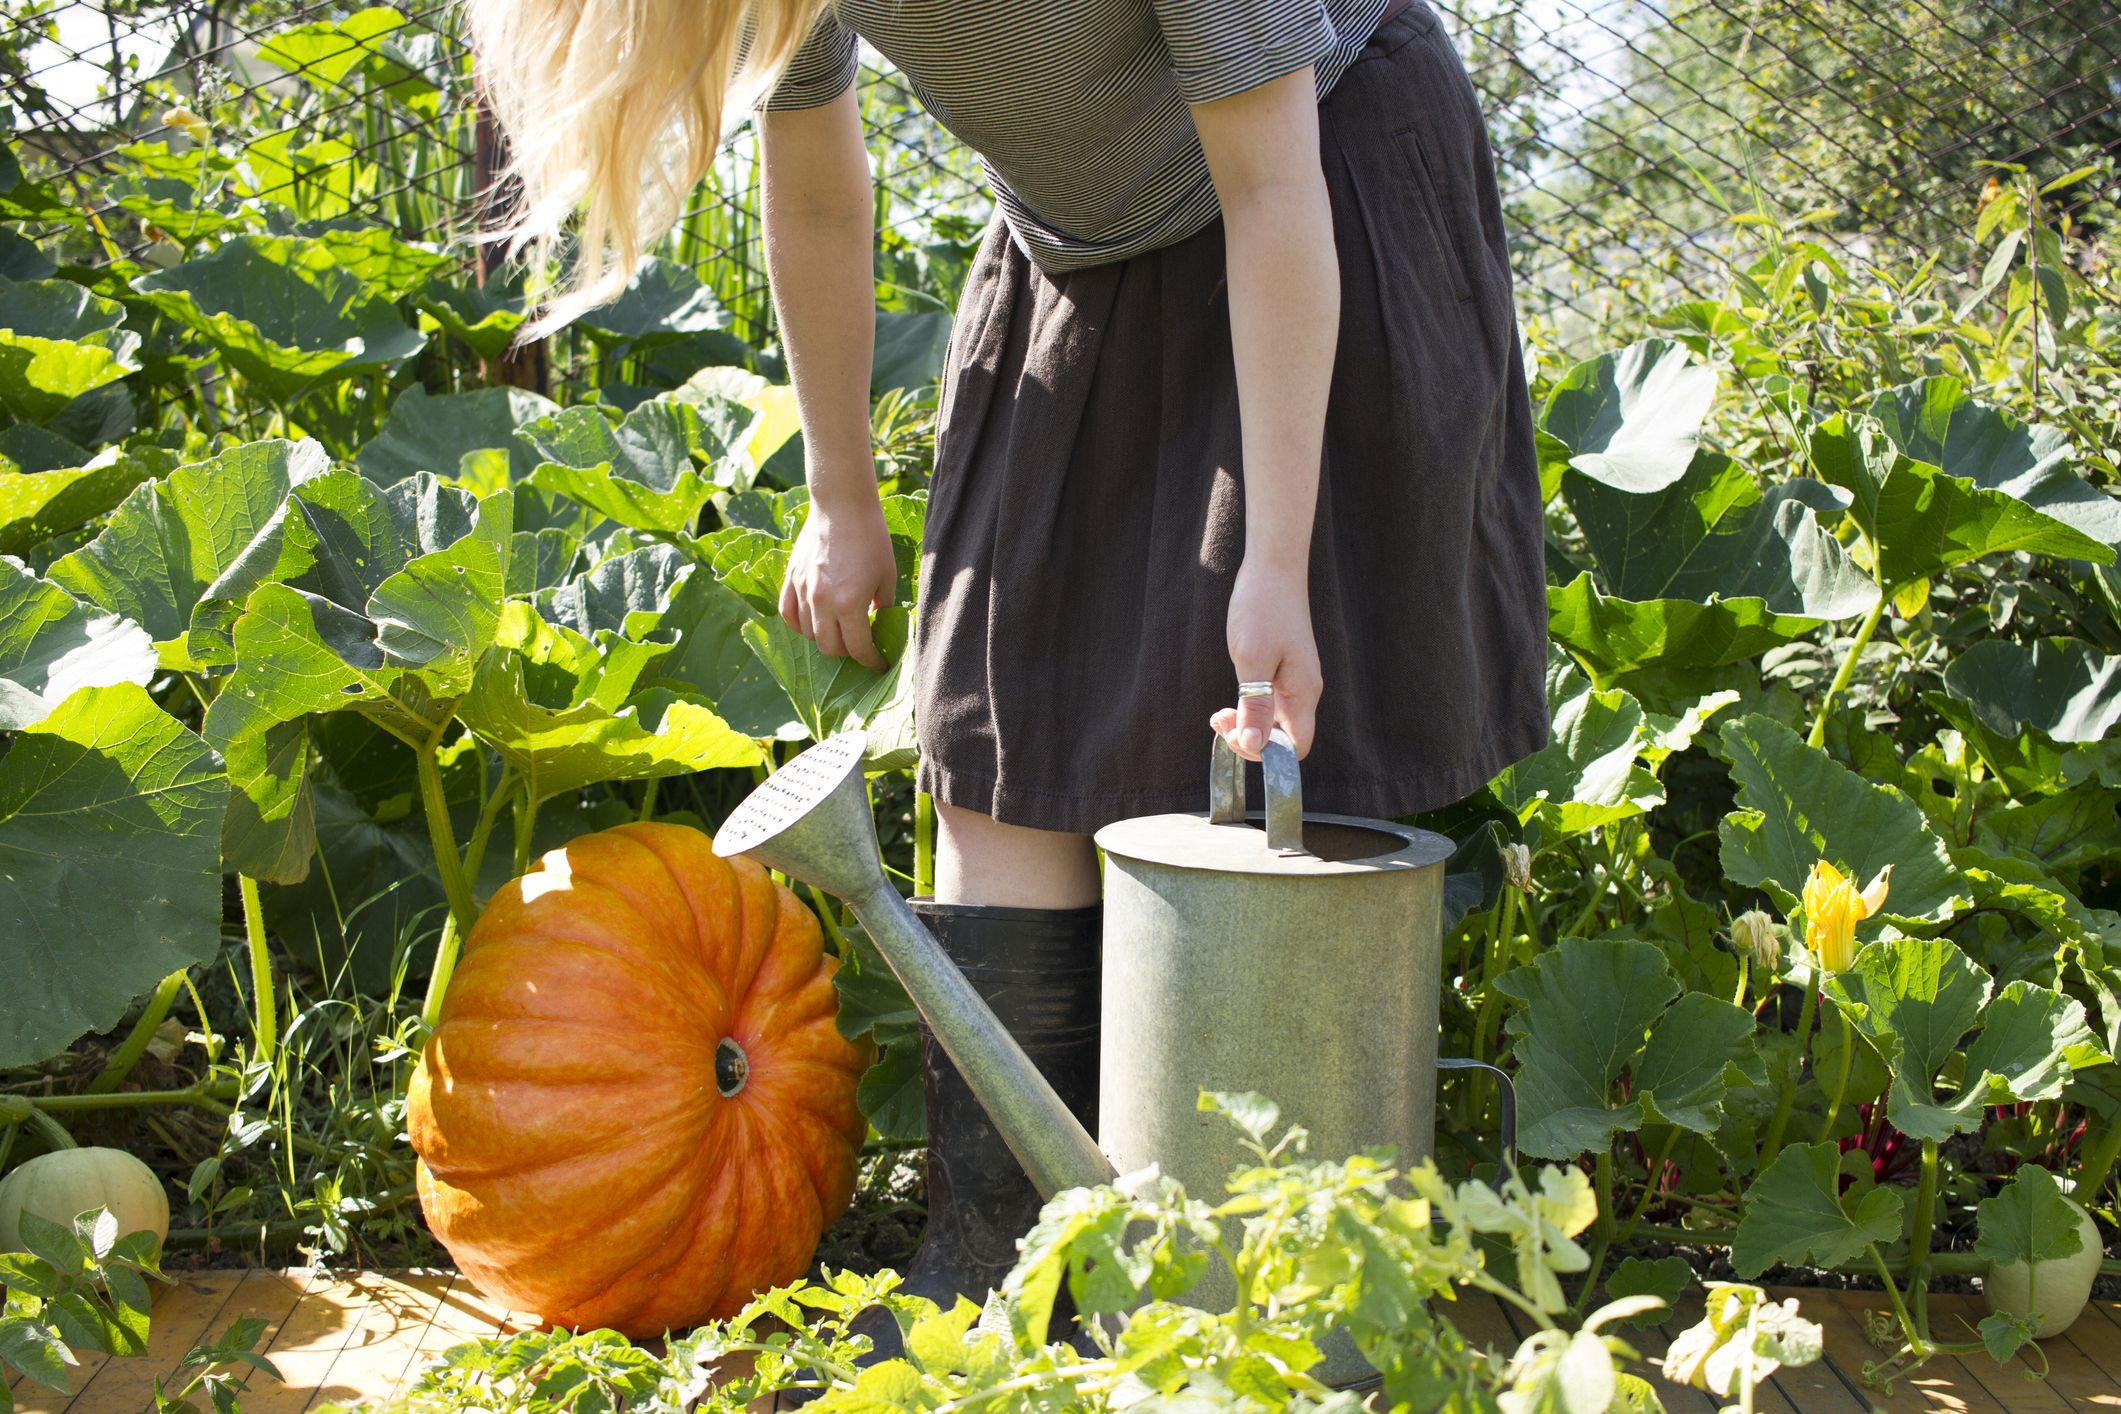 Planting Pumpkin Seeds 101: How to Grow Pumpkins